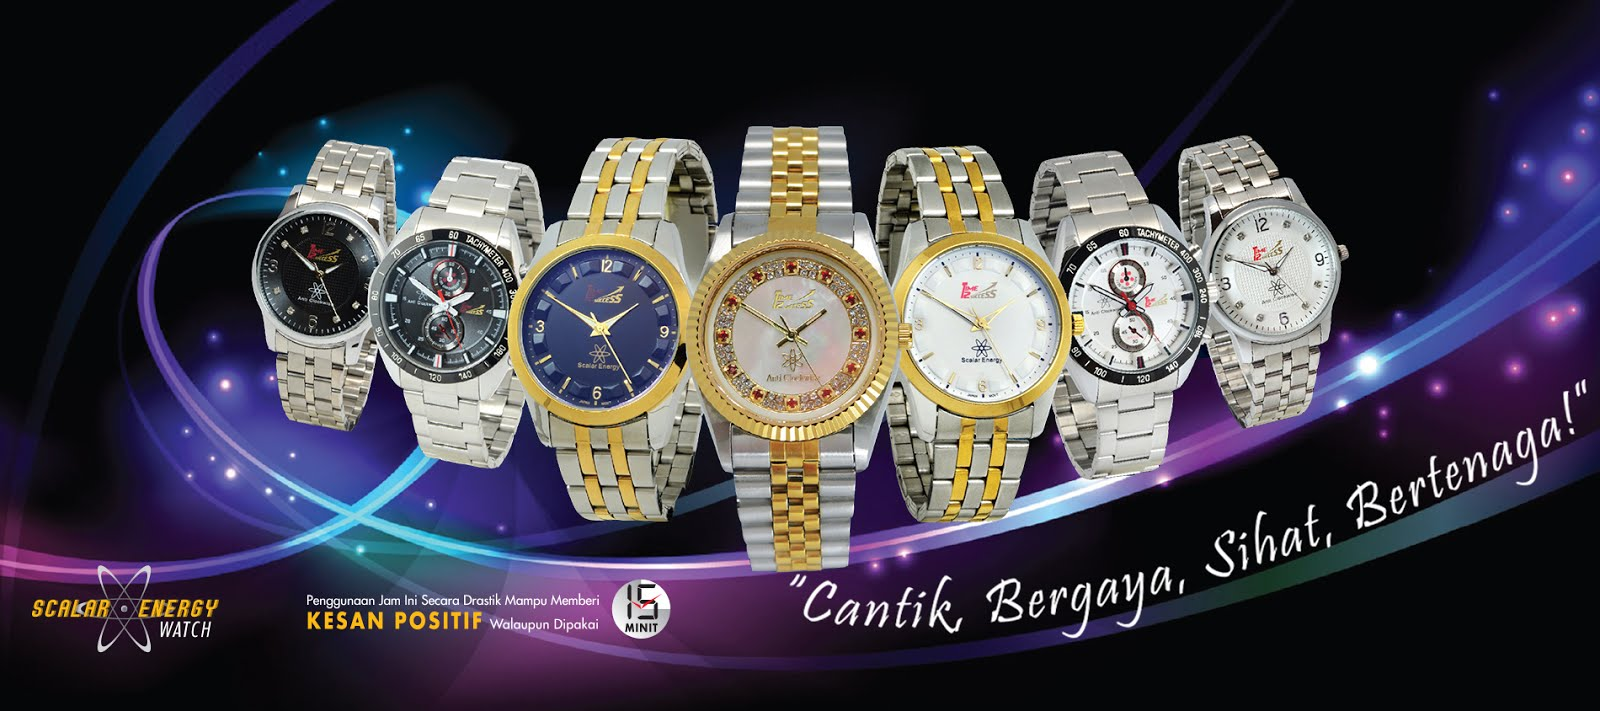 jam tawaf terapi anti clock wise scalar energy wrist watch titanium vital ion nano time 2 success